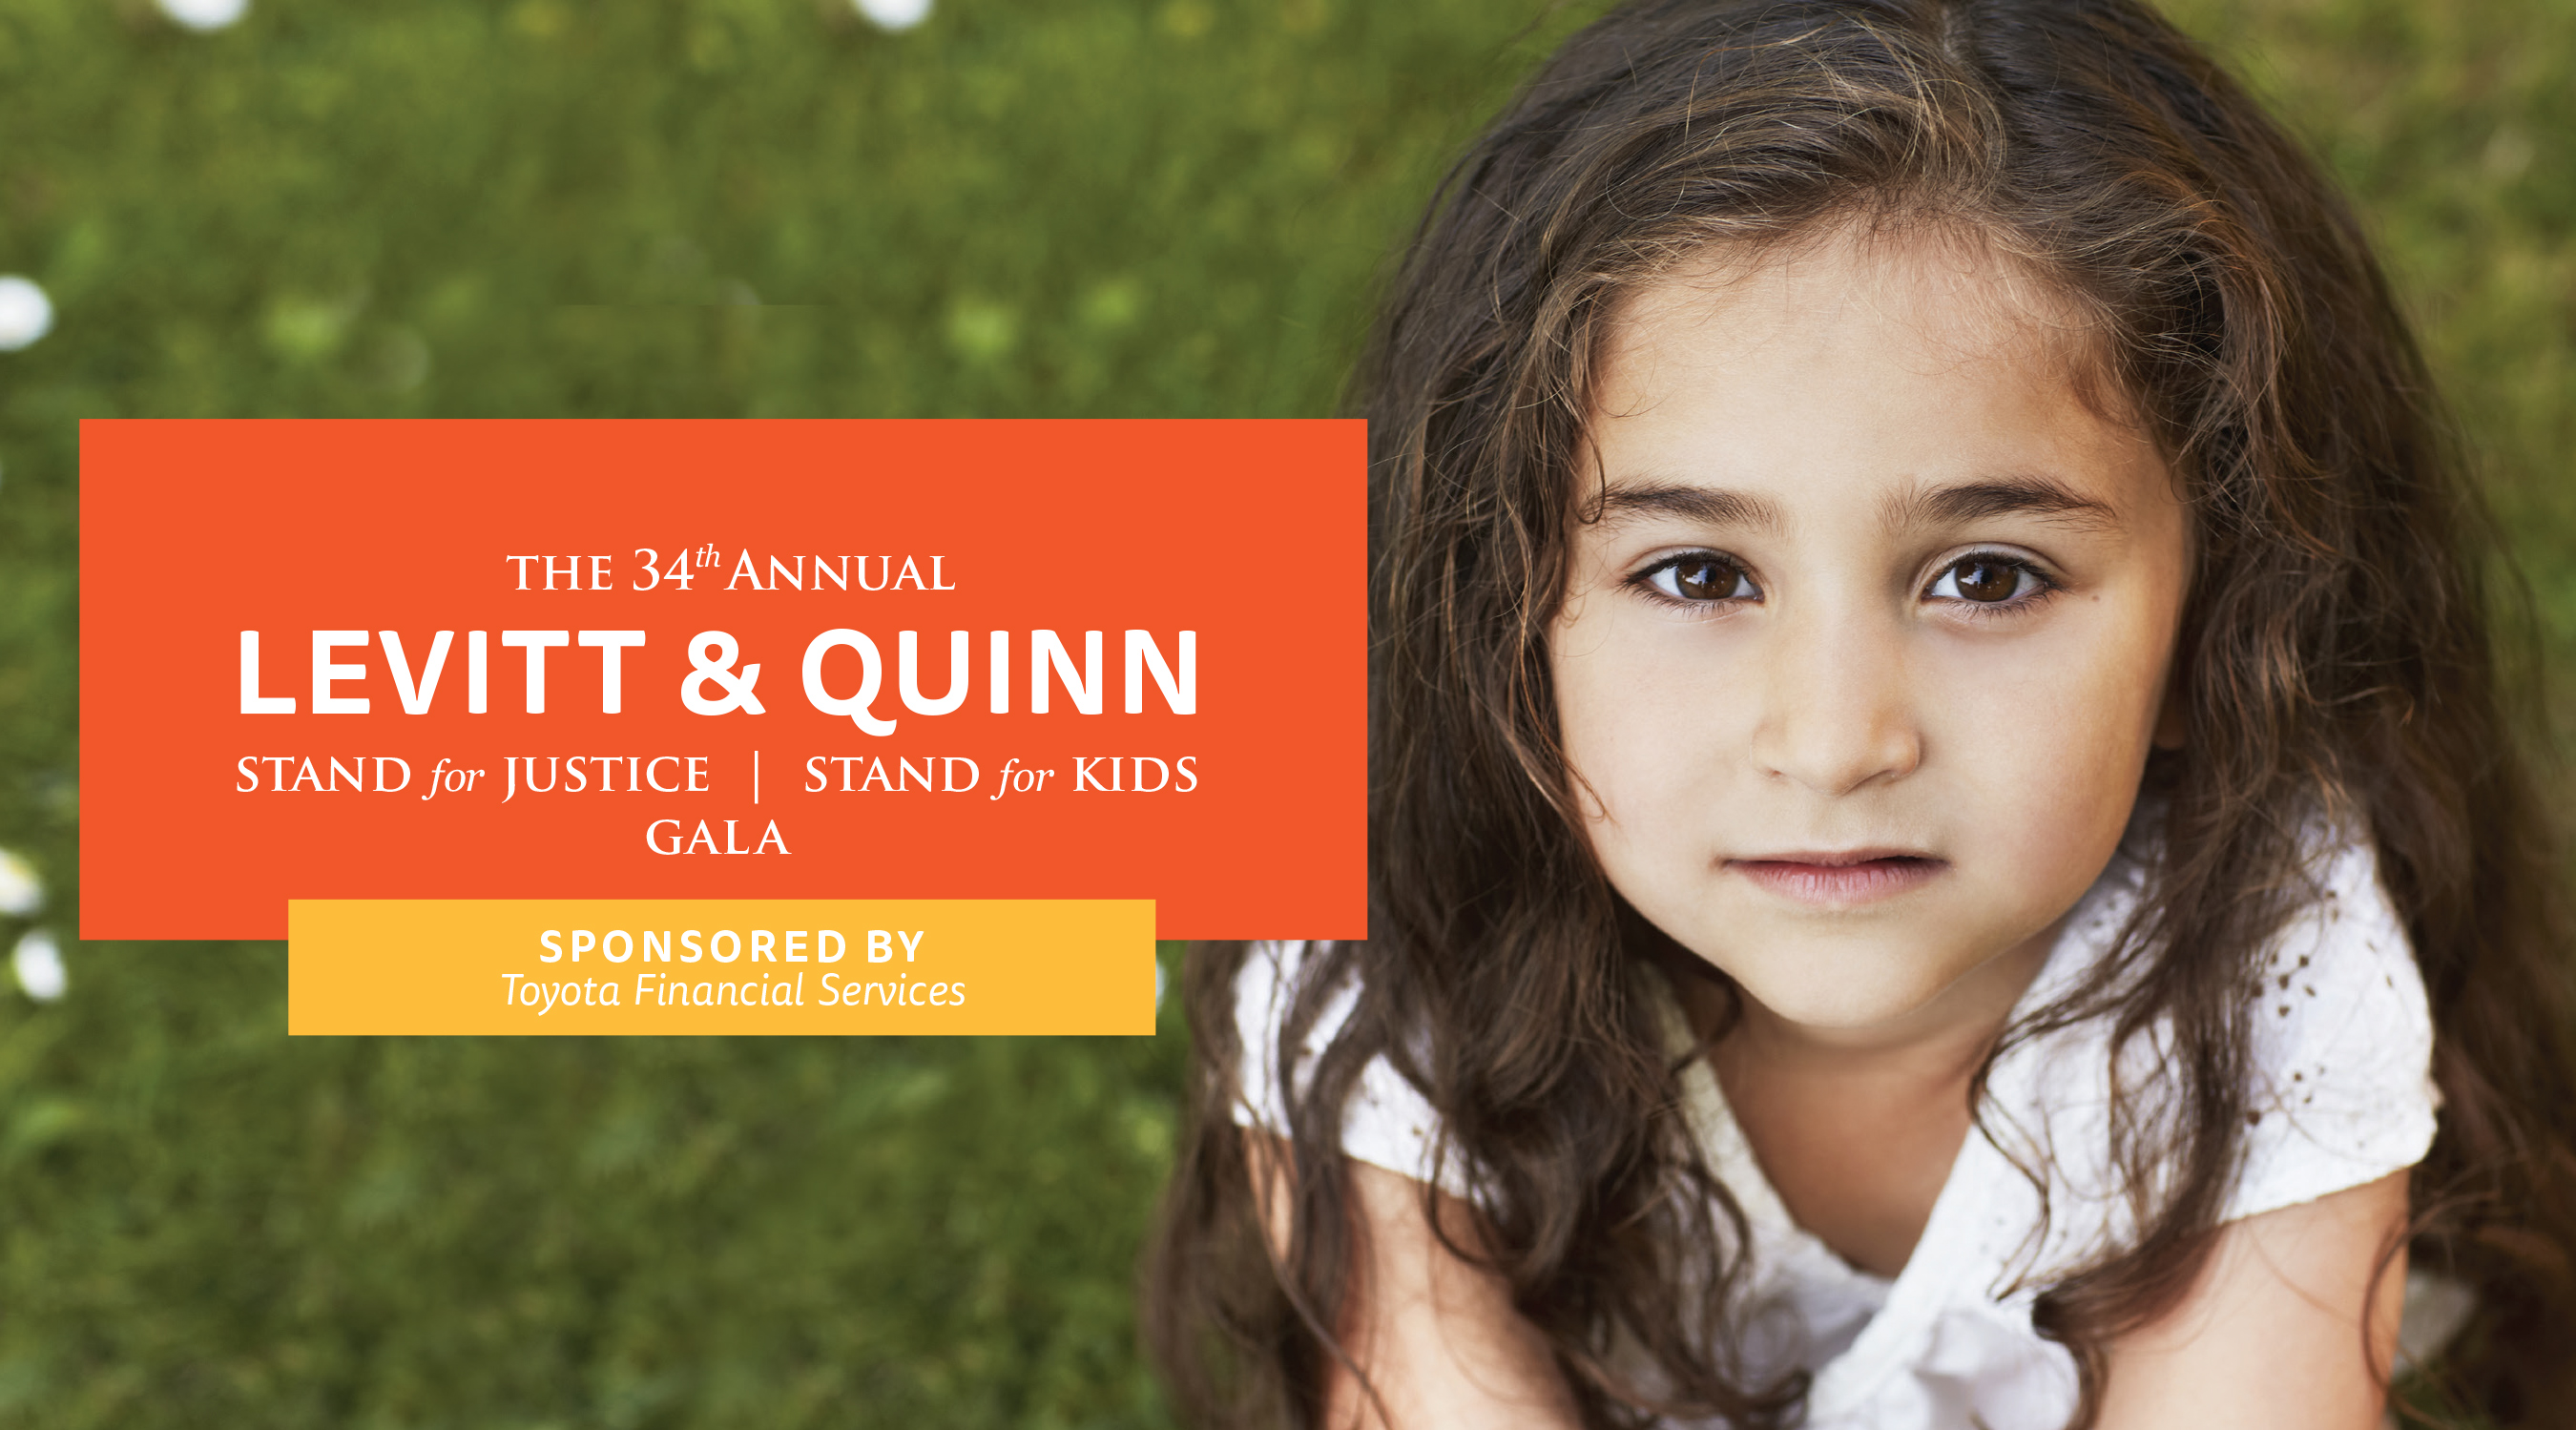 2015 Stand for Justice | Stand for Kids Gala